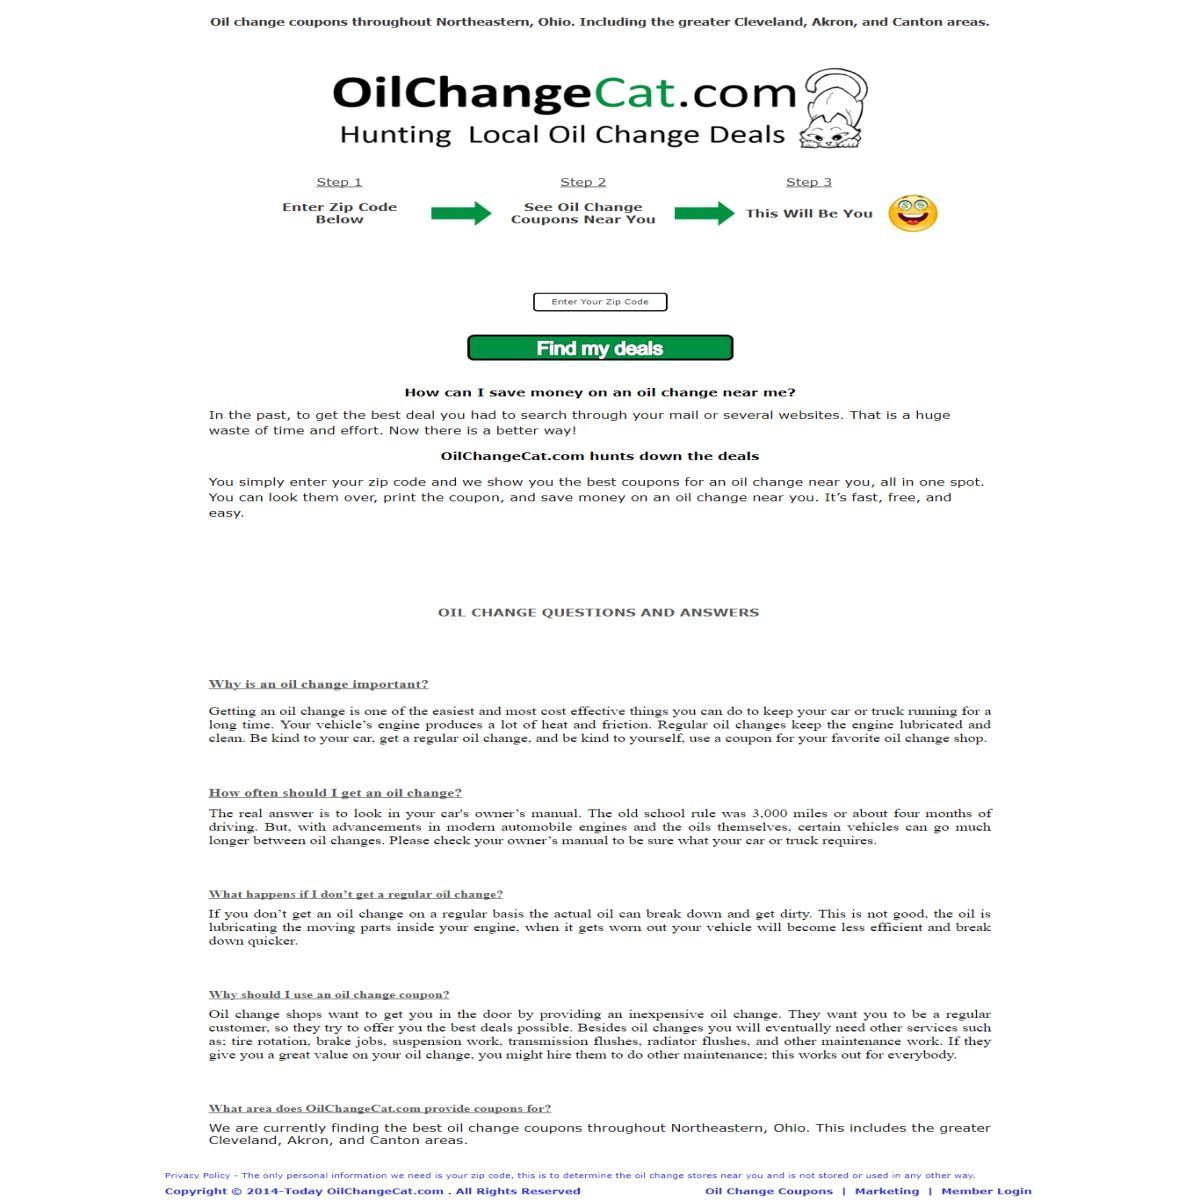 Oil change cat are currently finding the best oil change coupons oil change cat are currently finding the best oil change coupons throughout northeastern ohio solutioingenieria Gallery